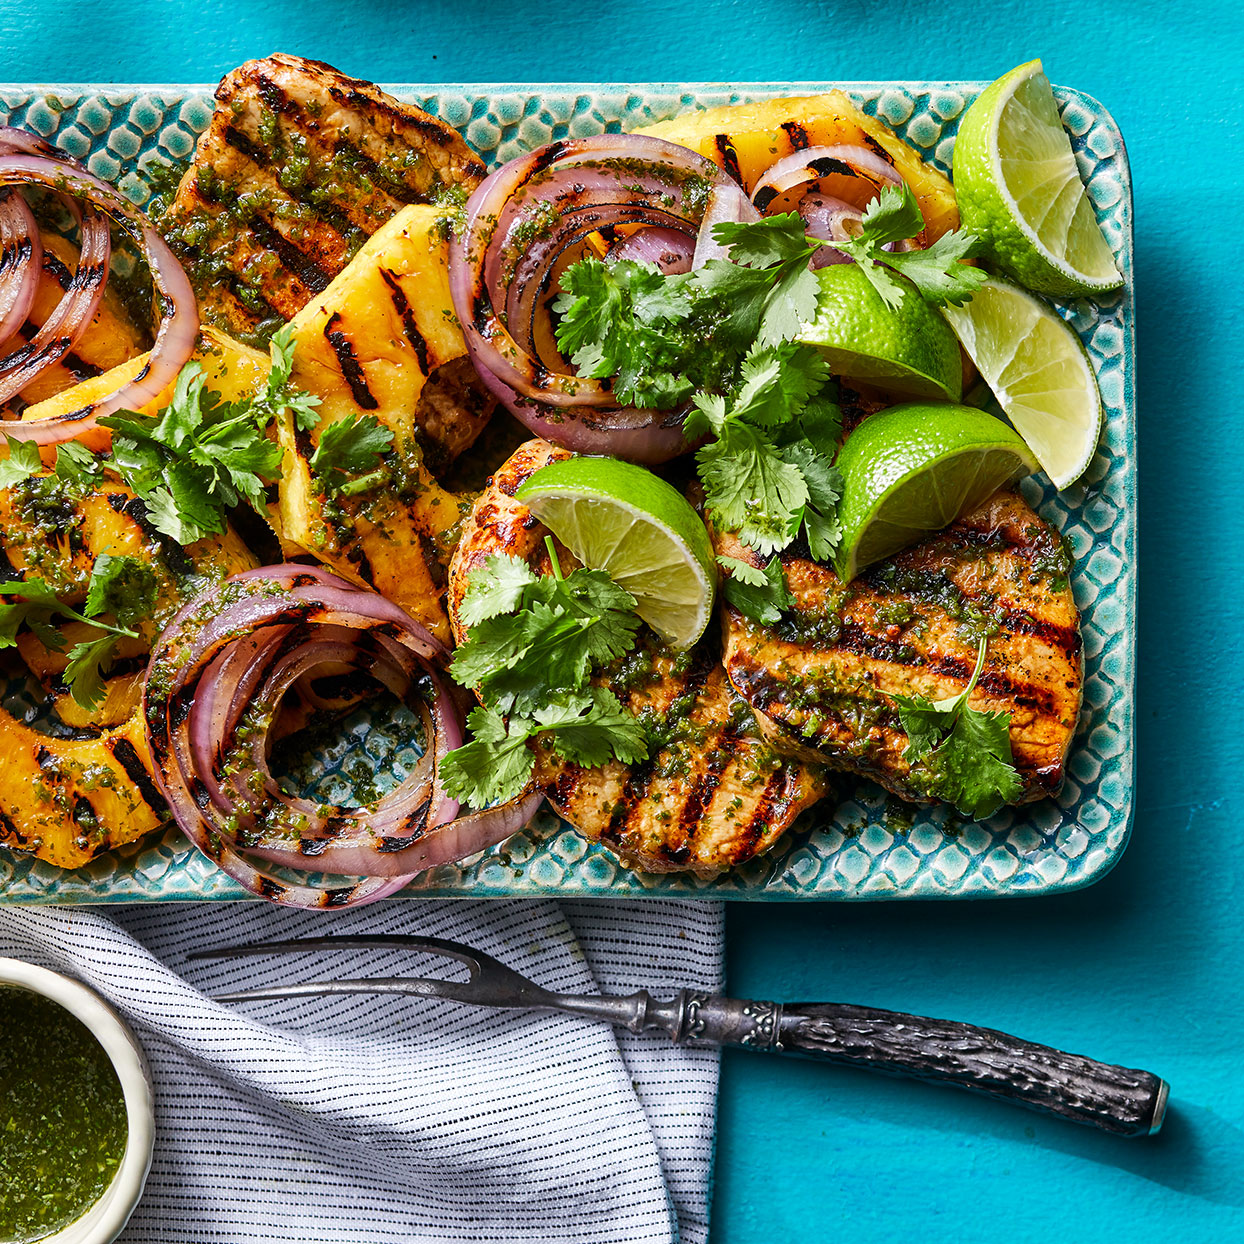 Never grilled pineapple? Get ready to be wowed. It caramelizes beautifully for a deeper flavor. Plus it's a totally tasty match with a grilled pork chop, cilantro and a little heat from serranos. Source: EatingWell Magazine, April 2020